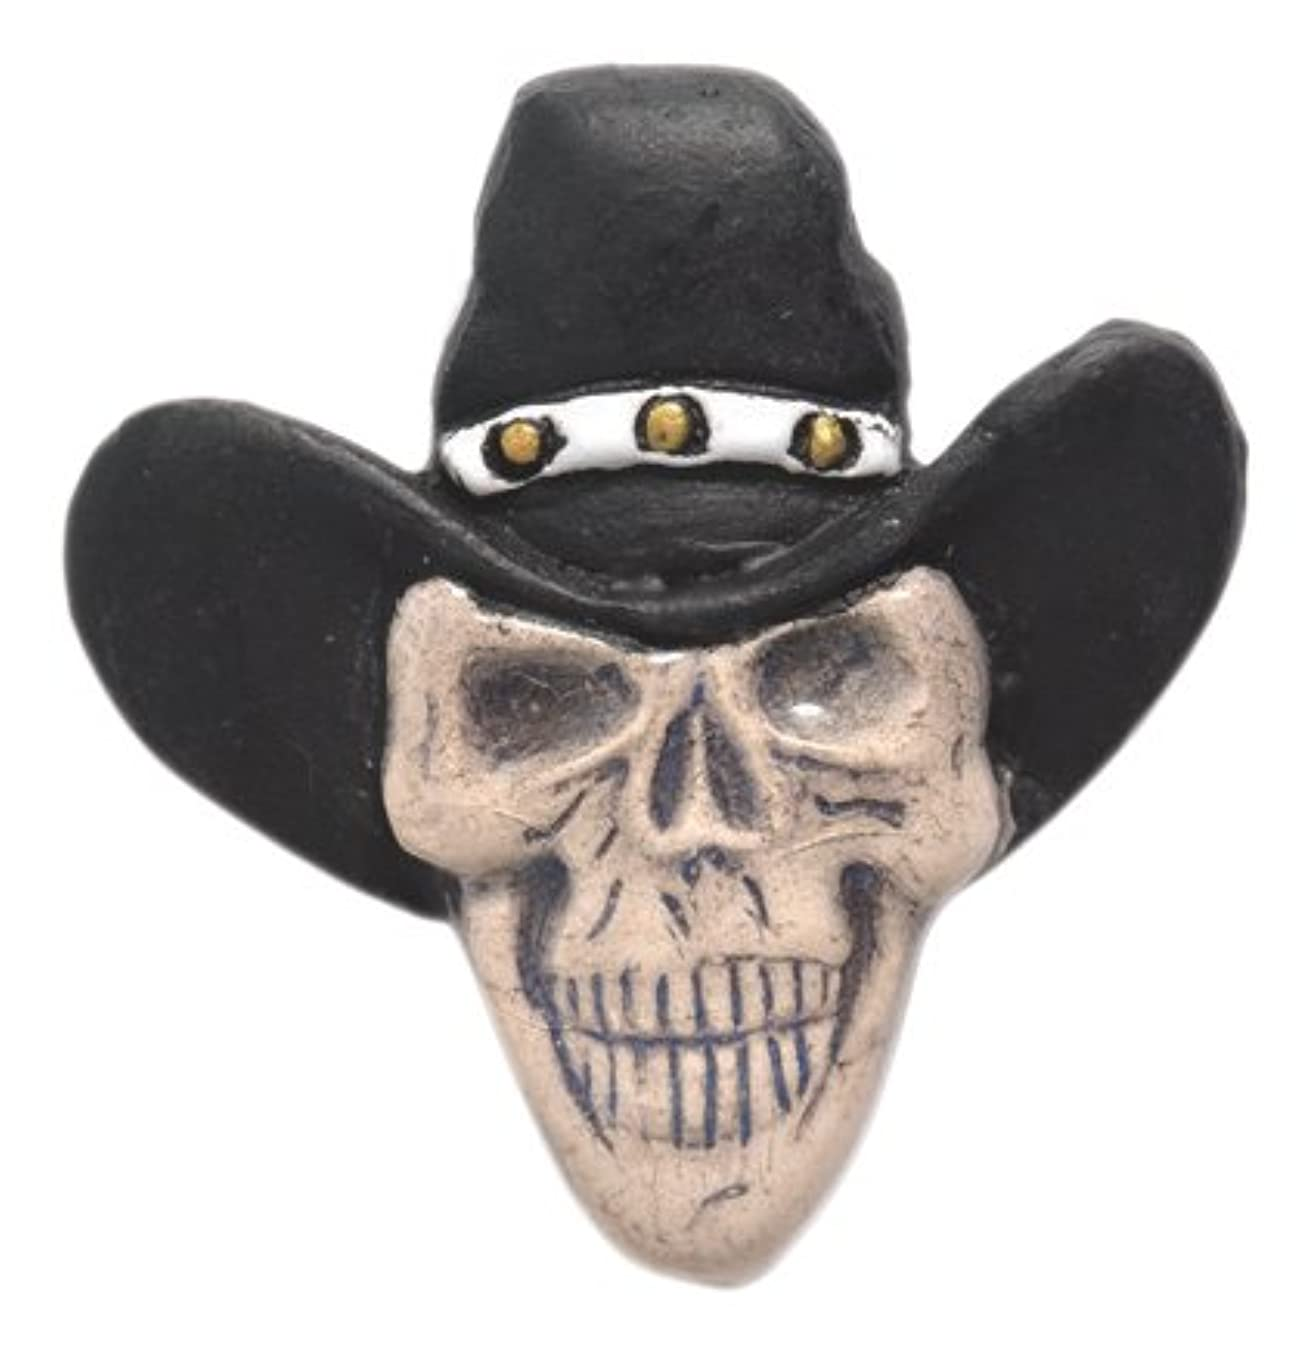 Shipwreck Beads 33 by 35mm Peruvian Hand Crafted Ceramic Skull Beads with Cowboy Hat, Black, 3 per Pack